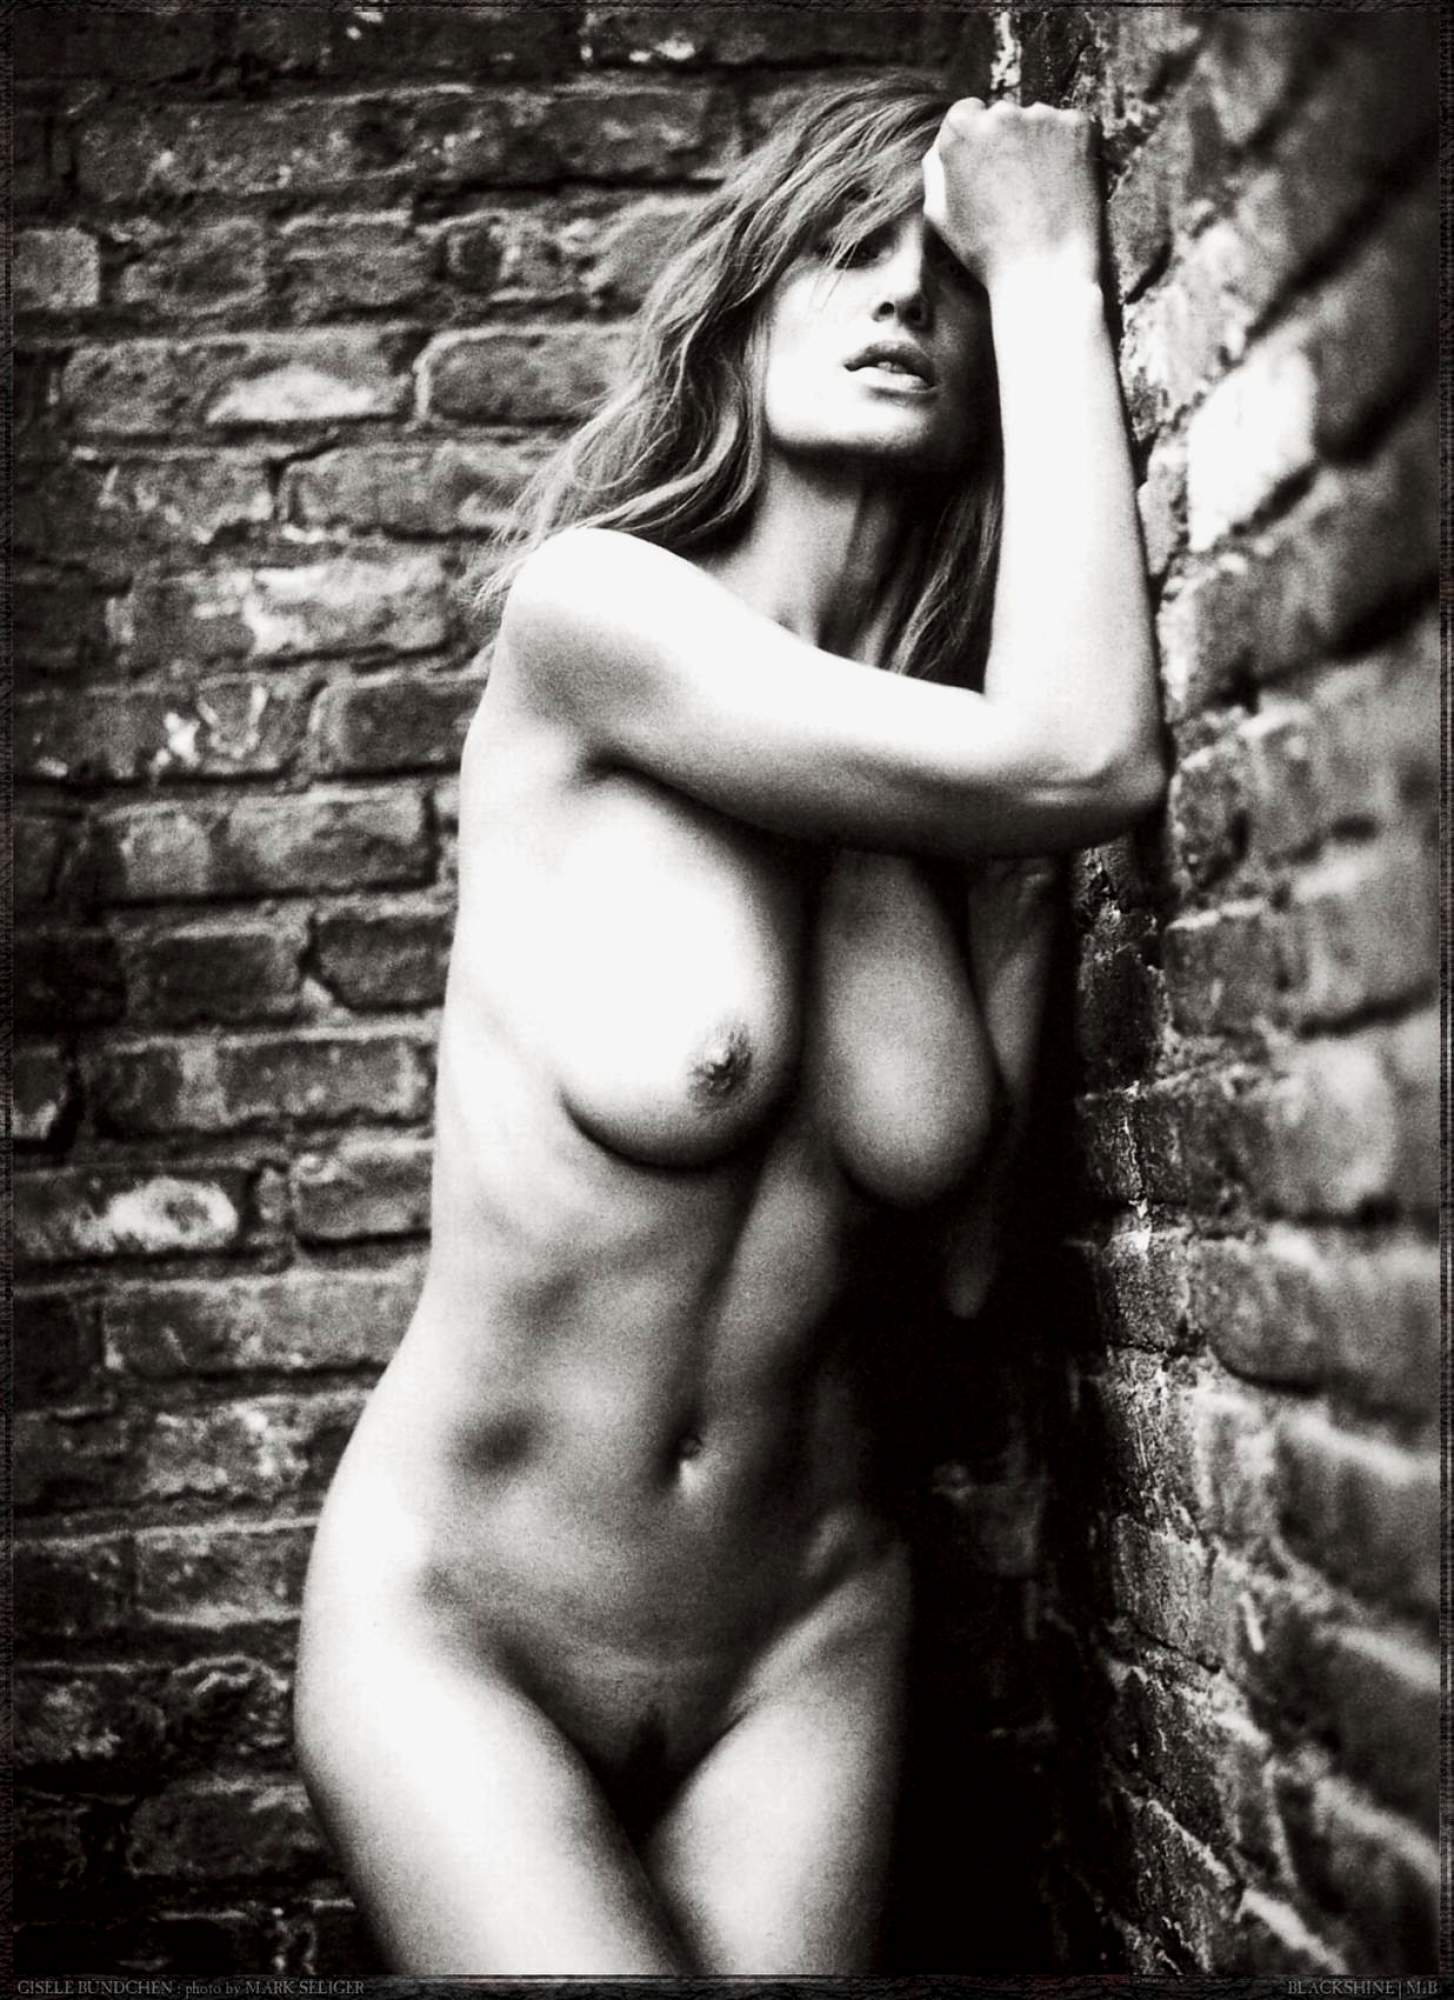 Hot gisele nude bundchen